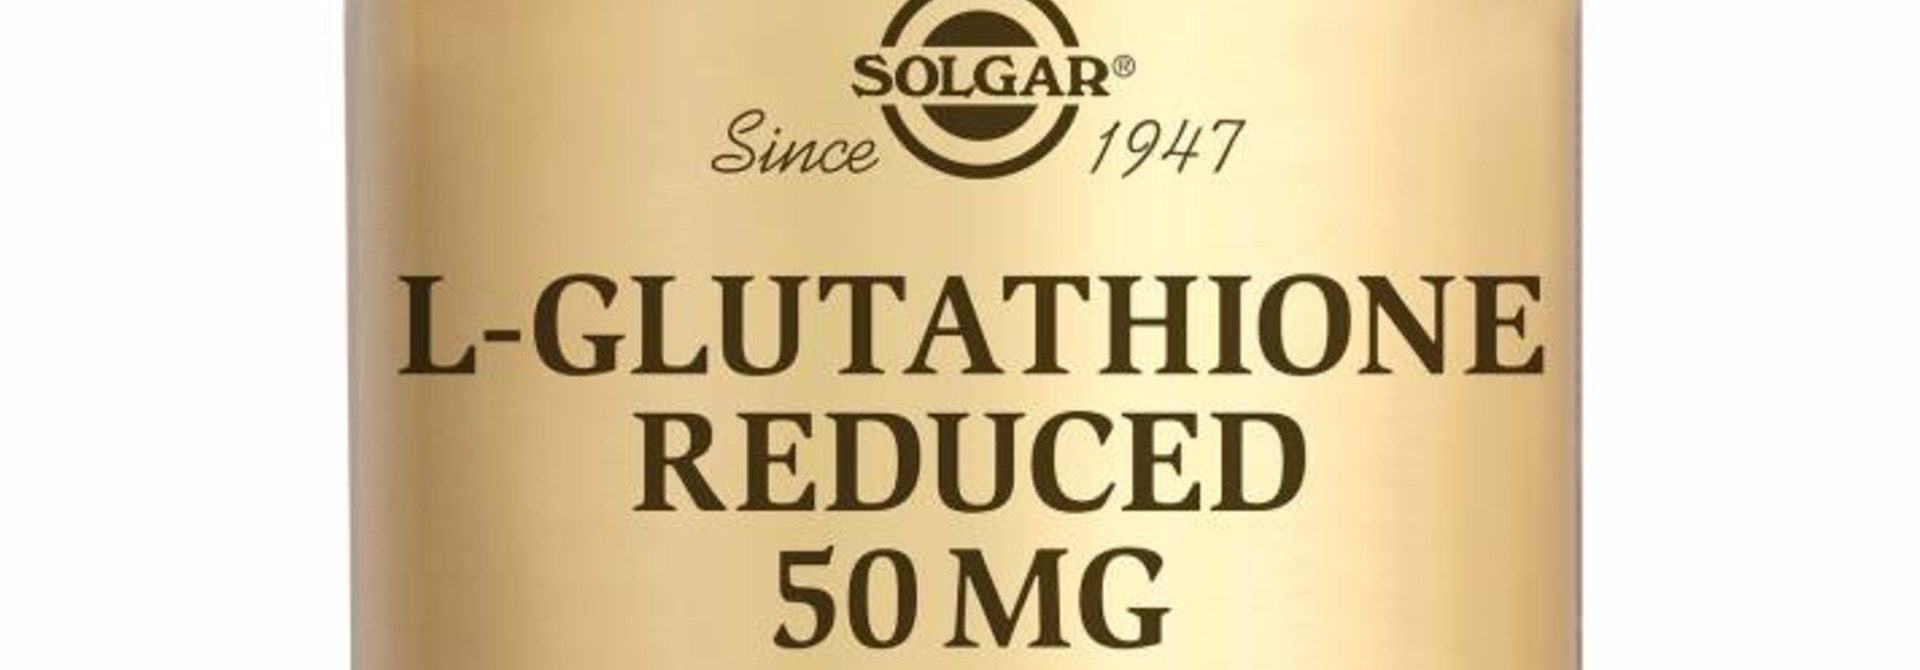 L-Glutathione Reduced 50 mg 30 plantaardige capsules